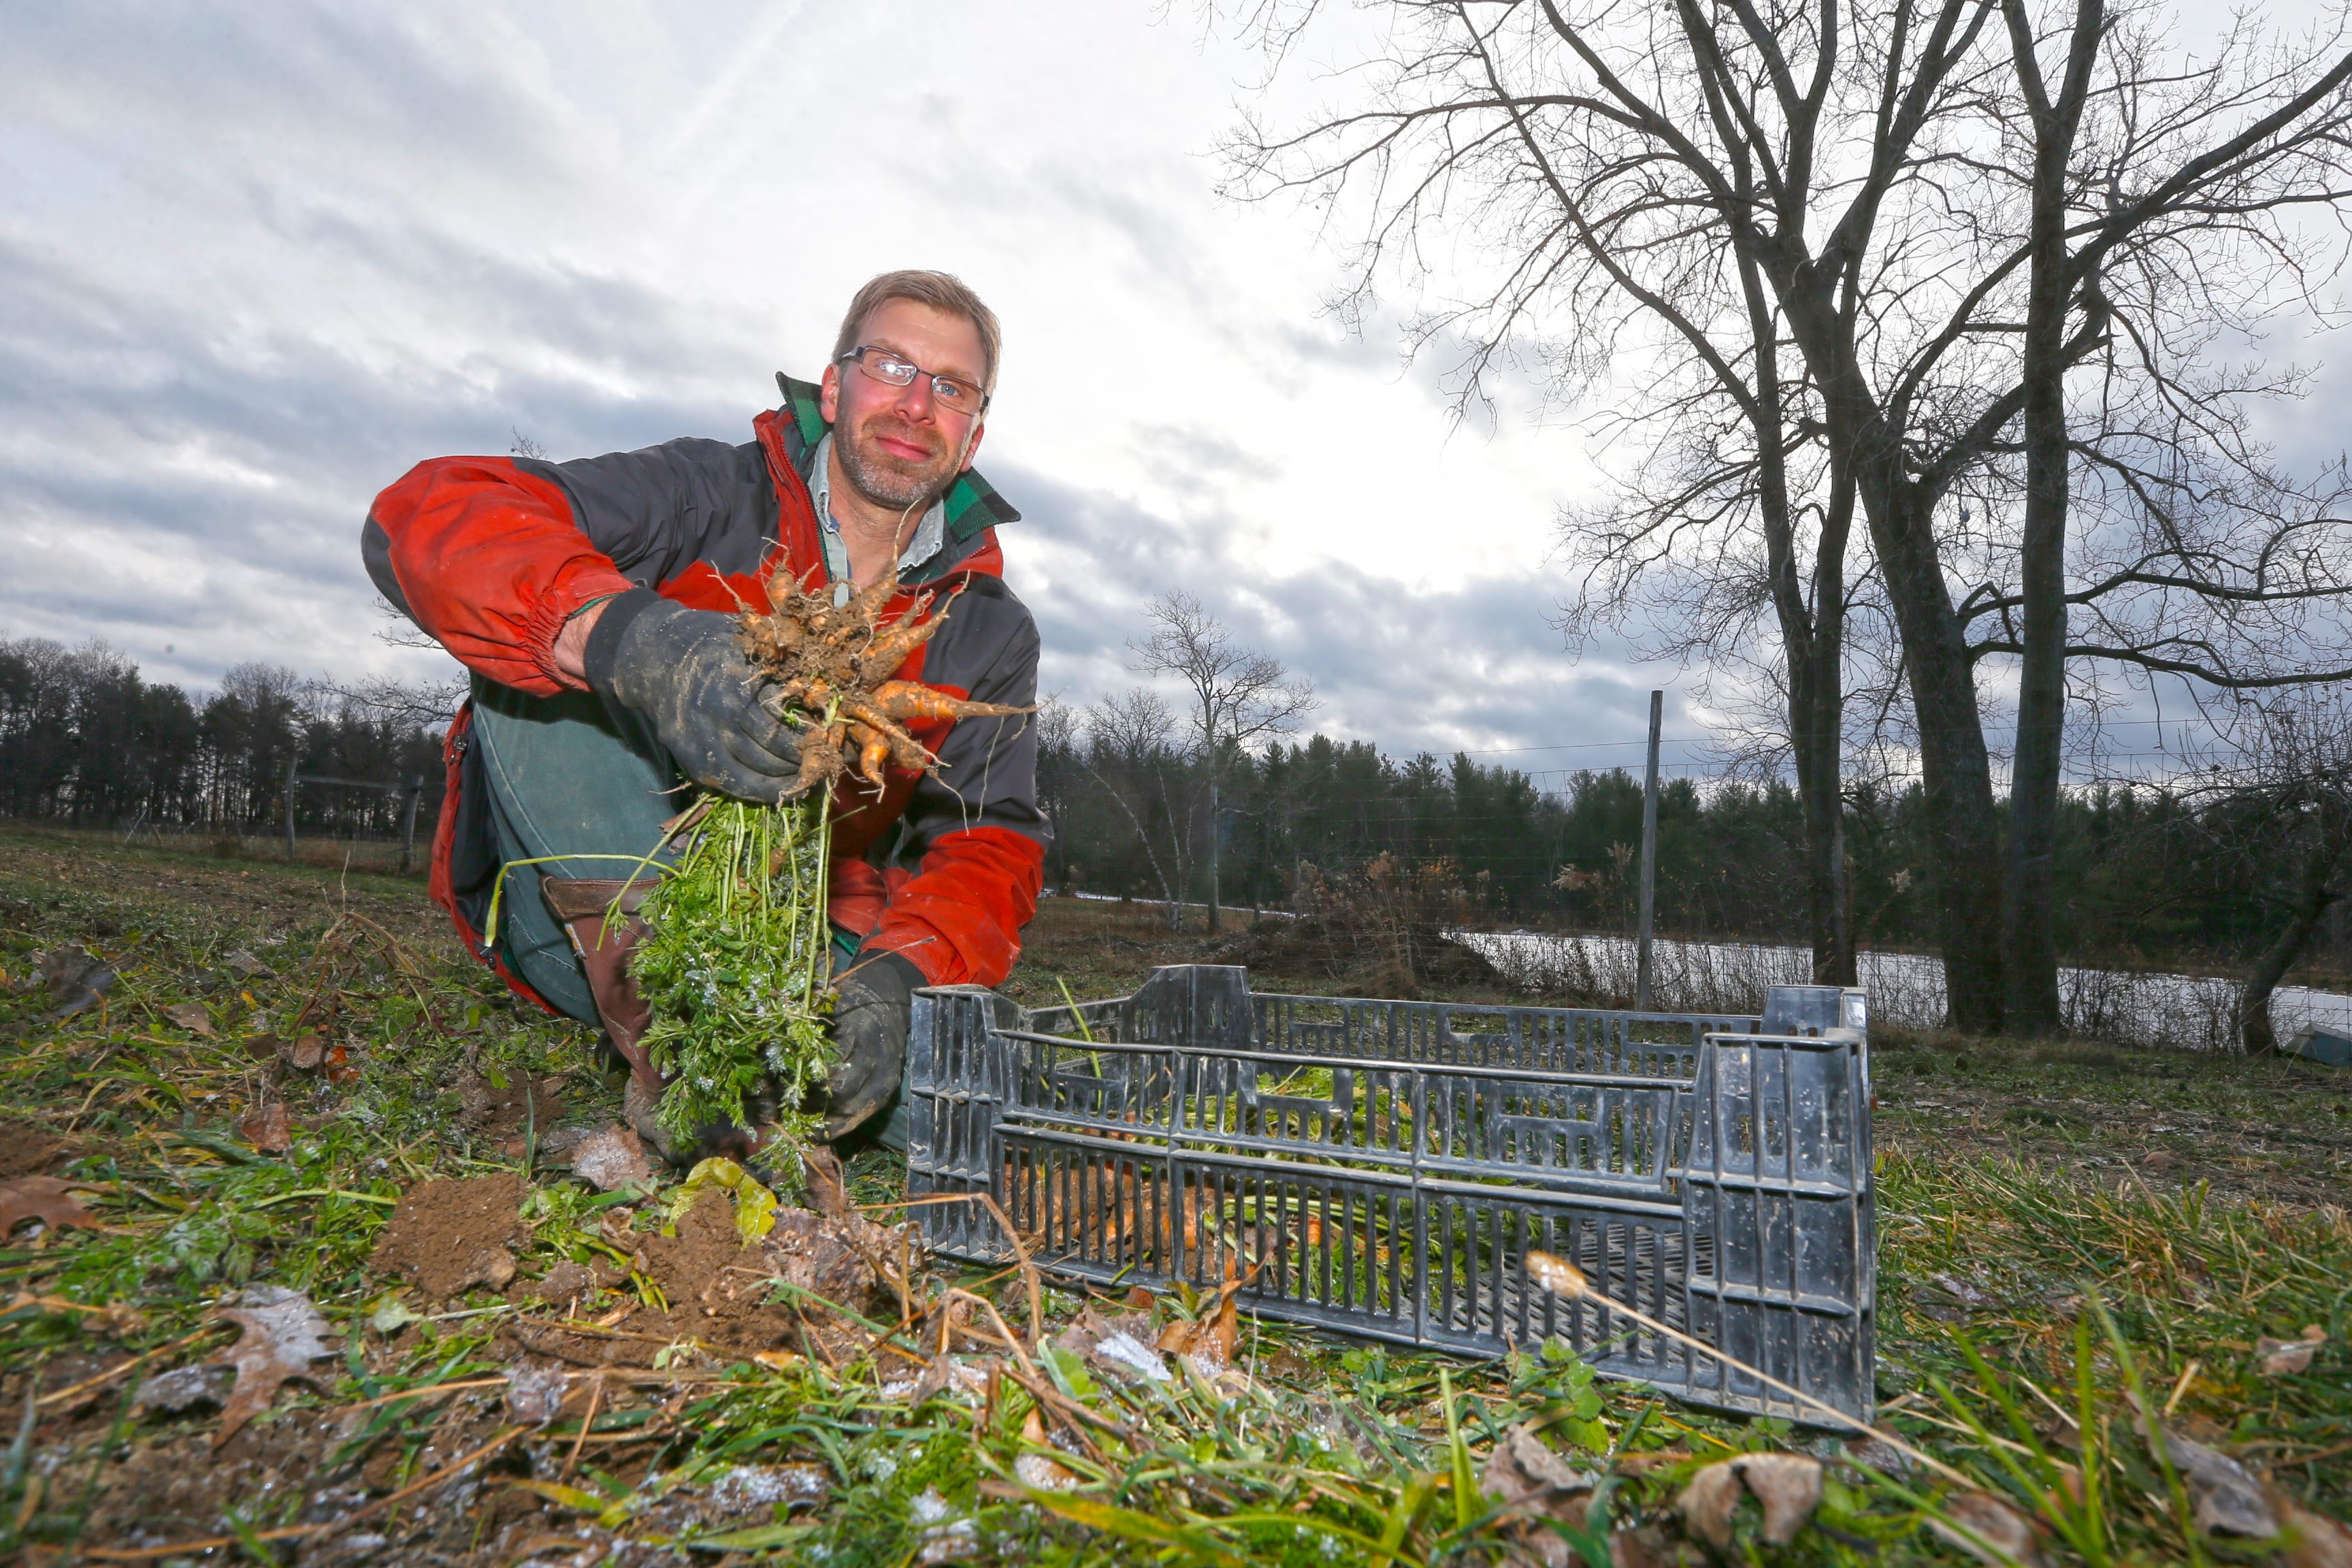 Dan Roelofs, who took over his family-owned Arden Farm in East Aurora after moving here from Massachusetts about eight years ago, harvested carrots before the ground froze back in early December.